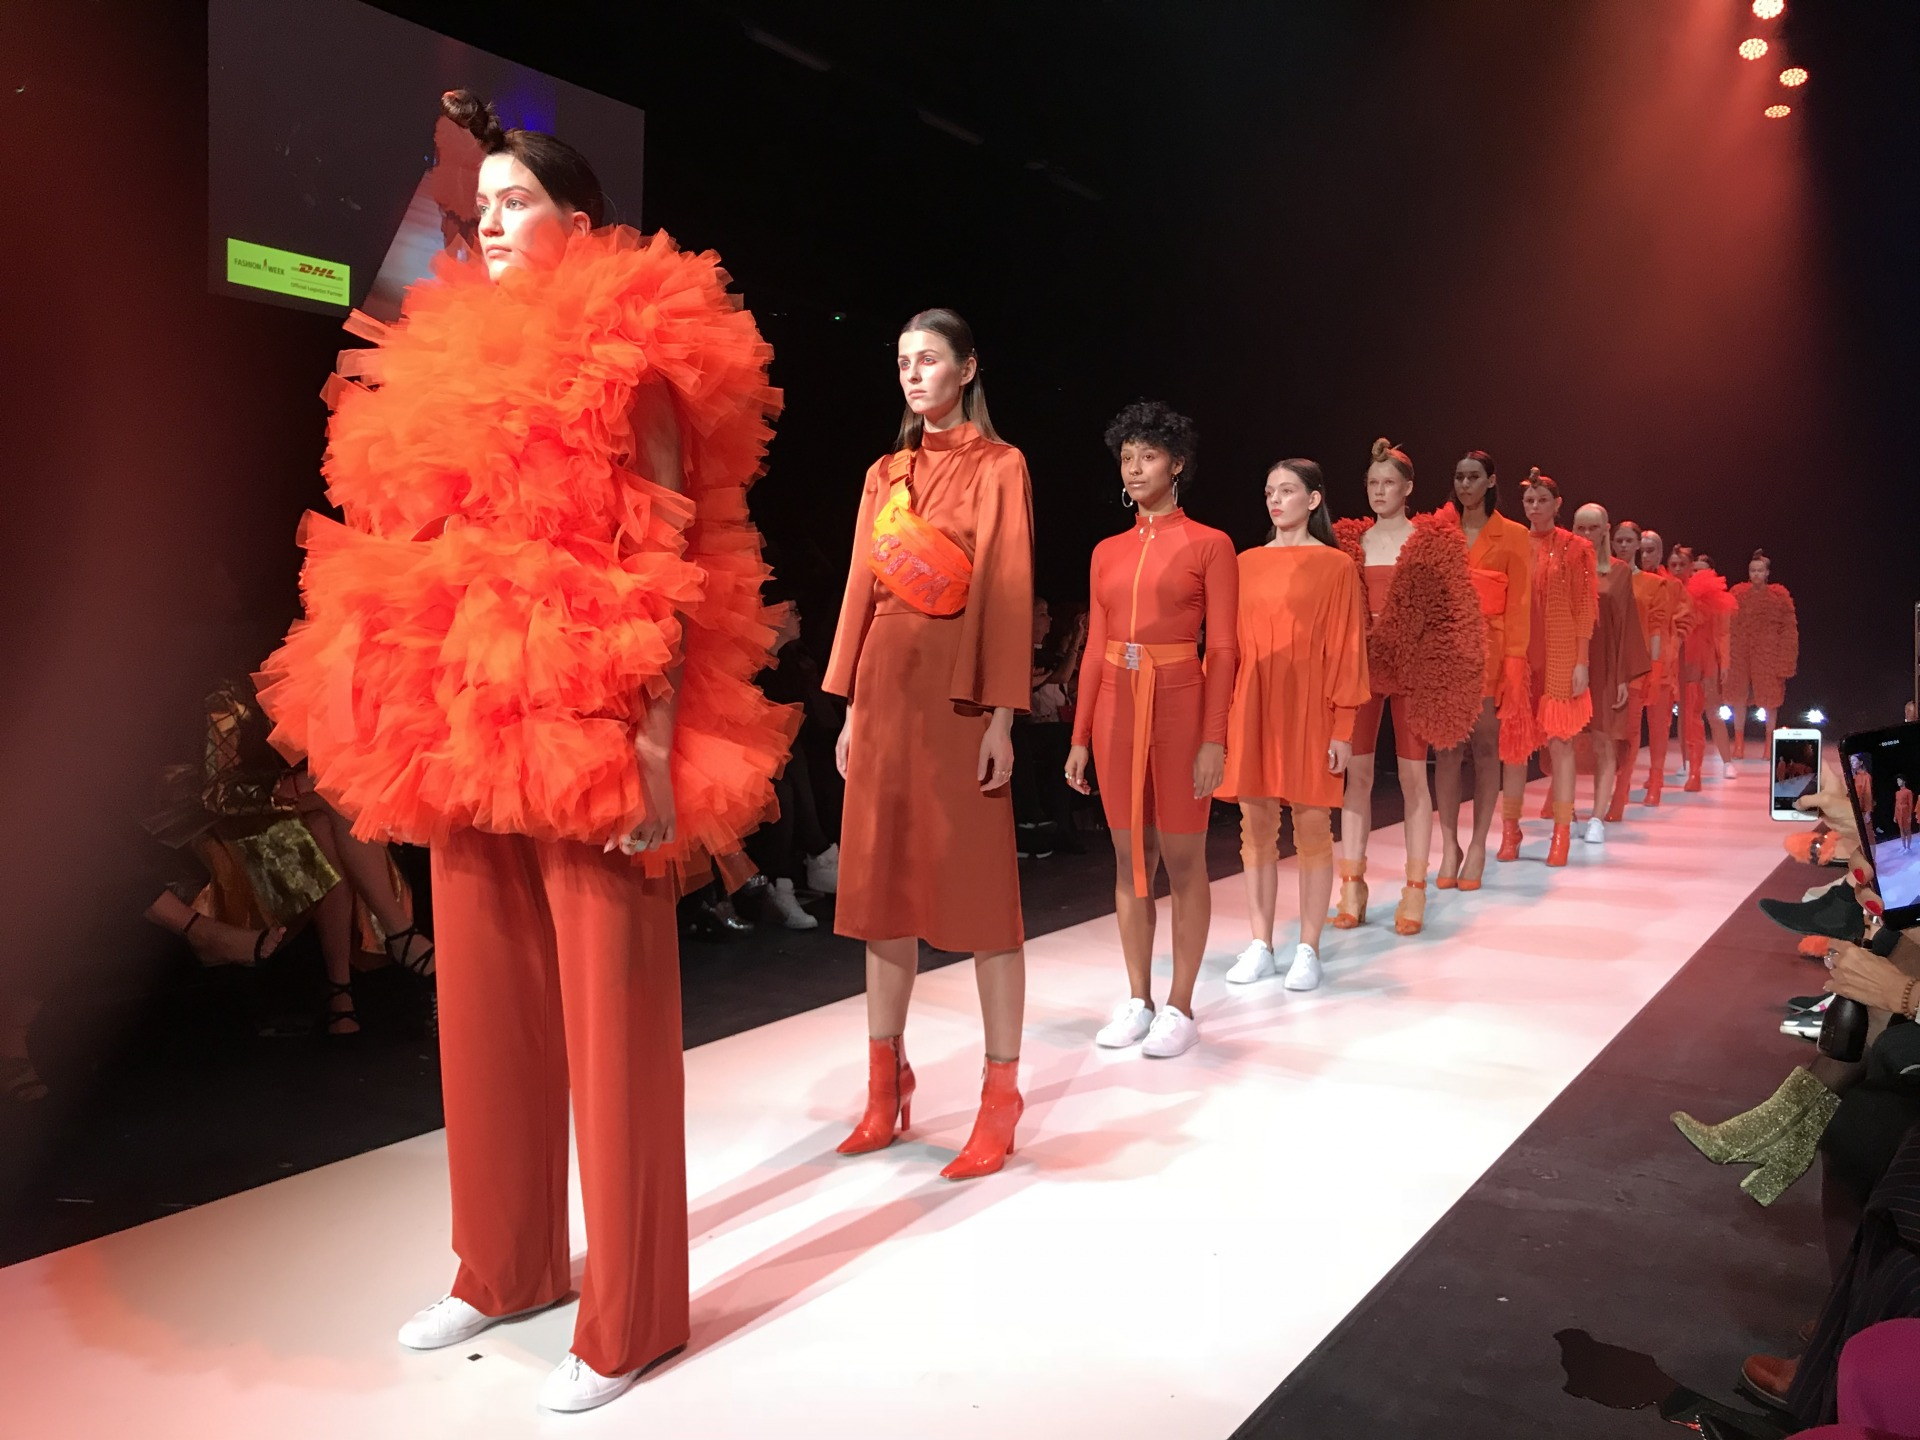 Girls in bright orange dresses stand next to each other on the catwalk